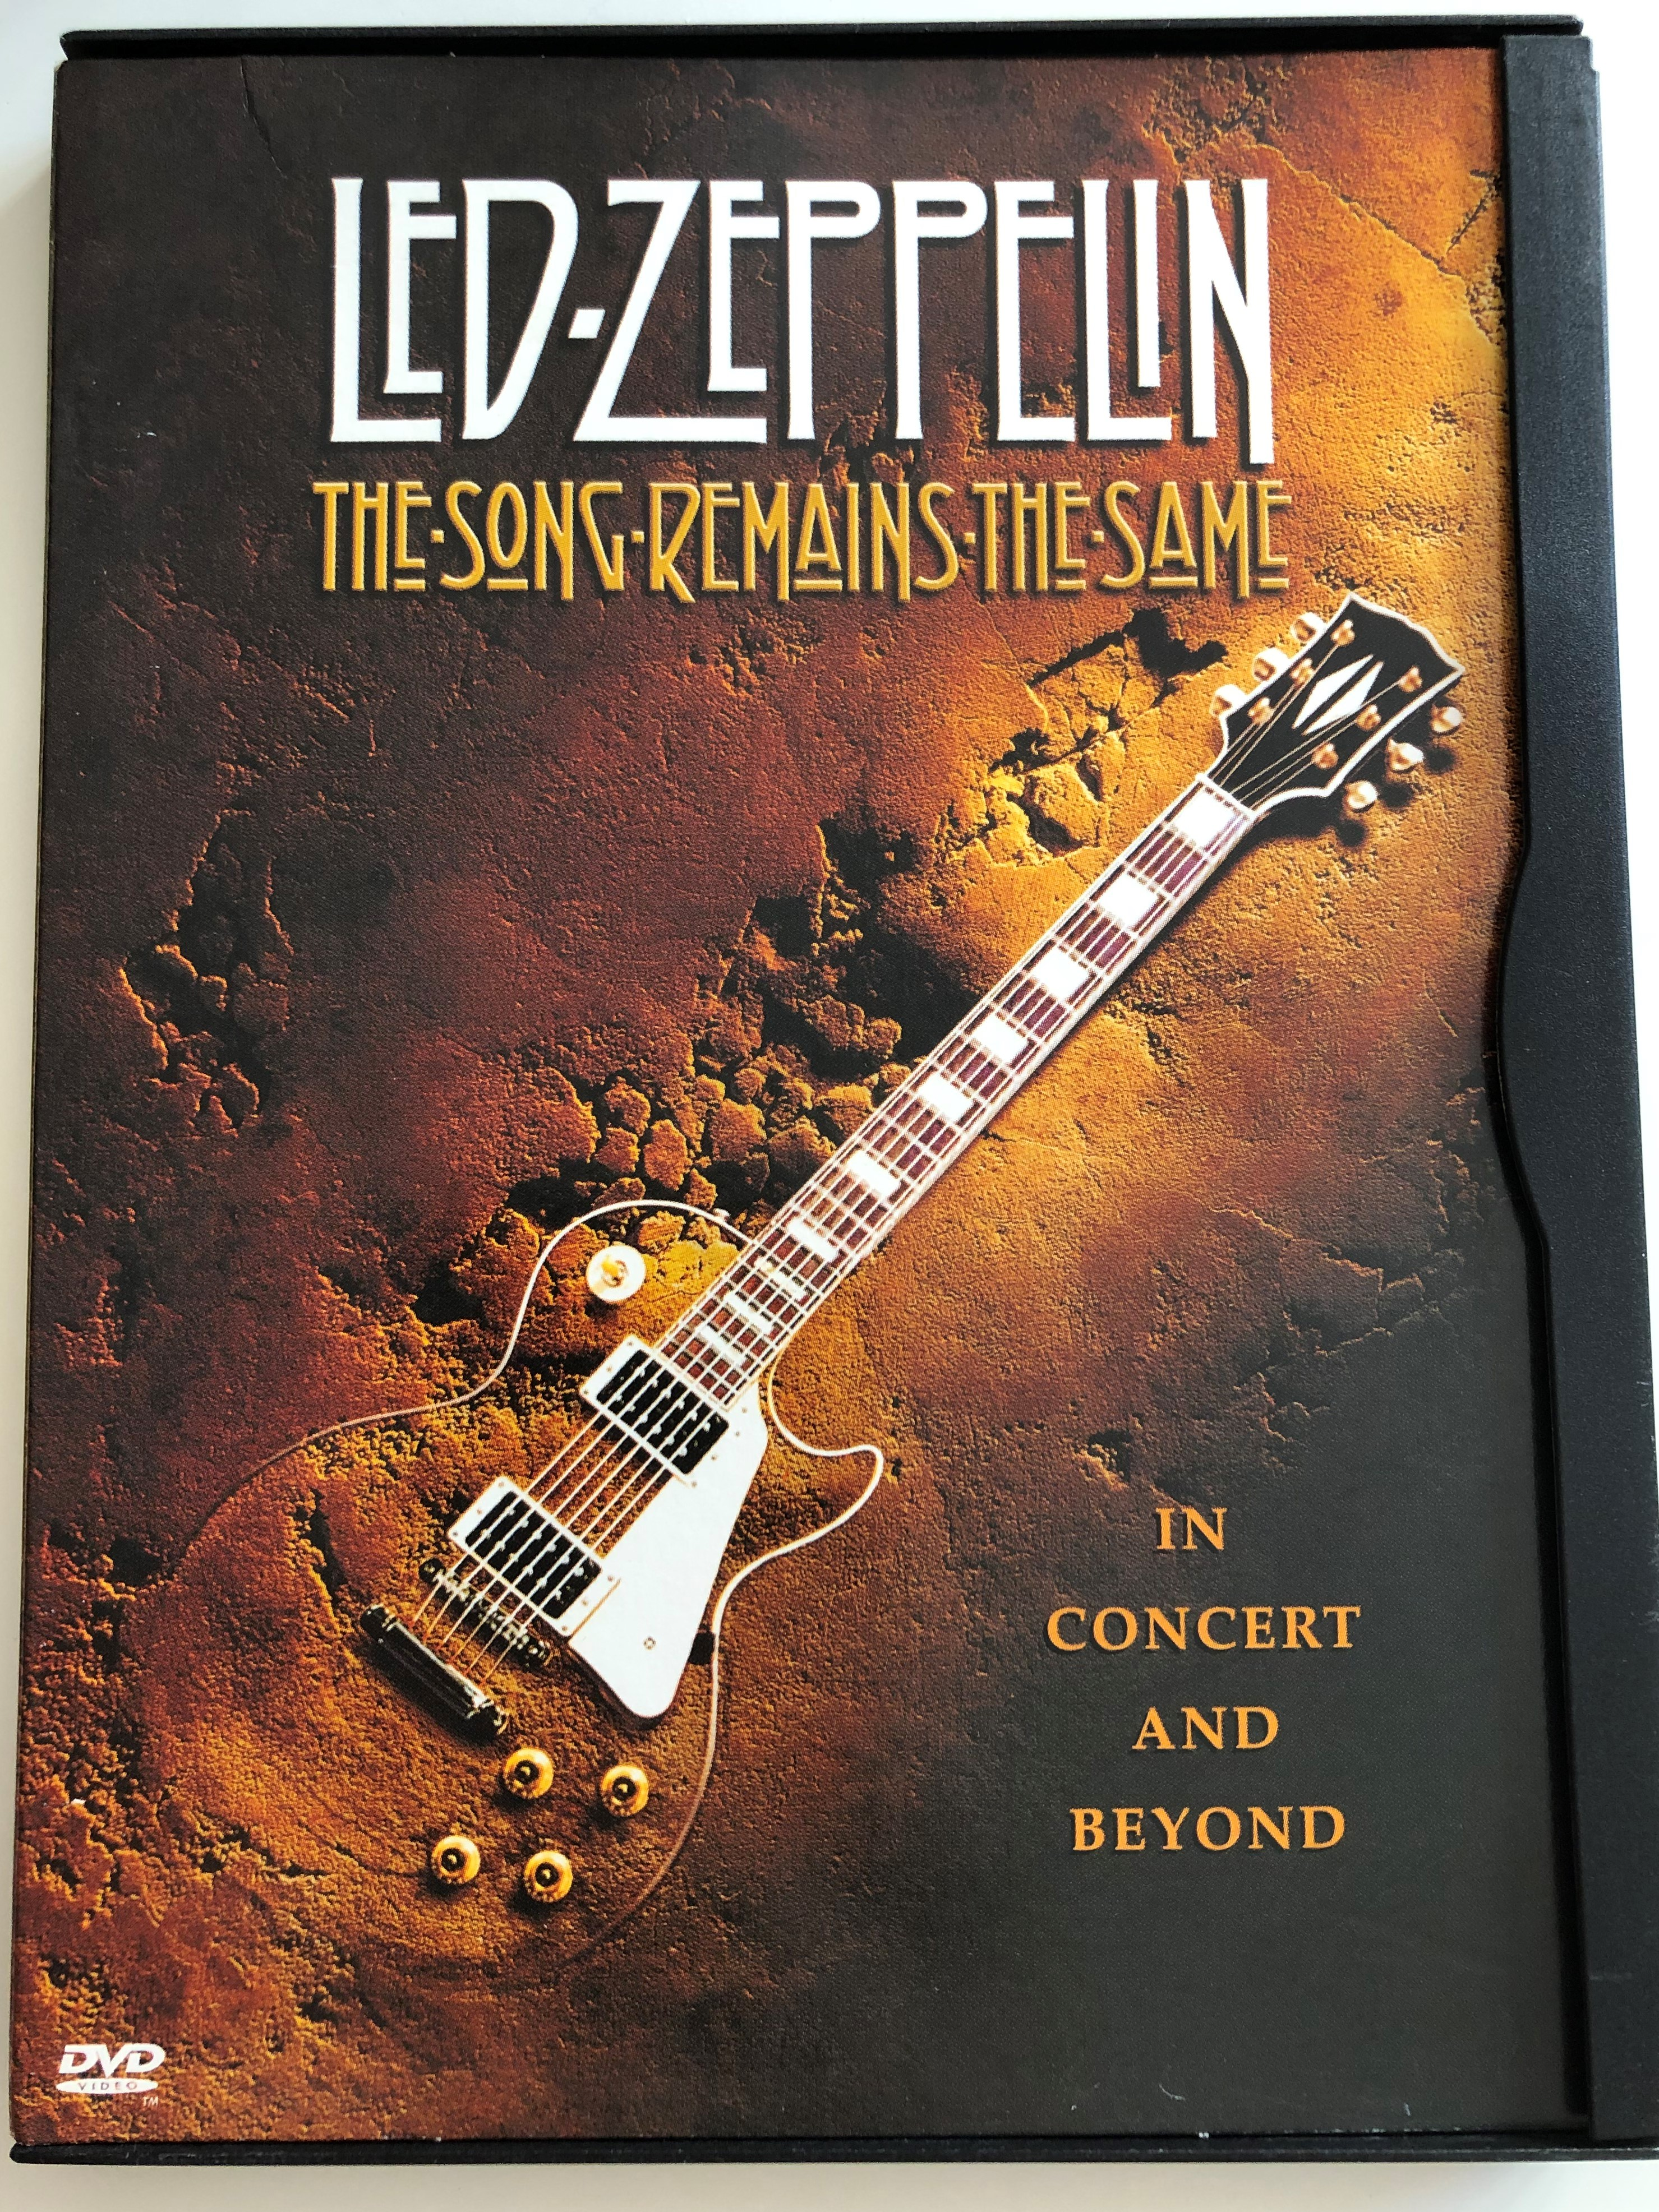 led-zeppelin-the-song-remains-the-same-dvd-1976-in-concert-and-beyond-1.jpg